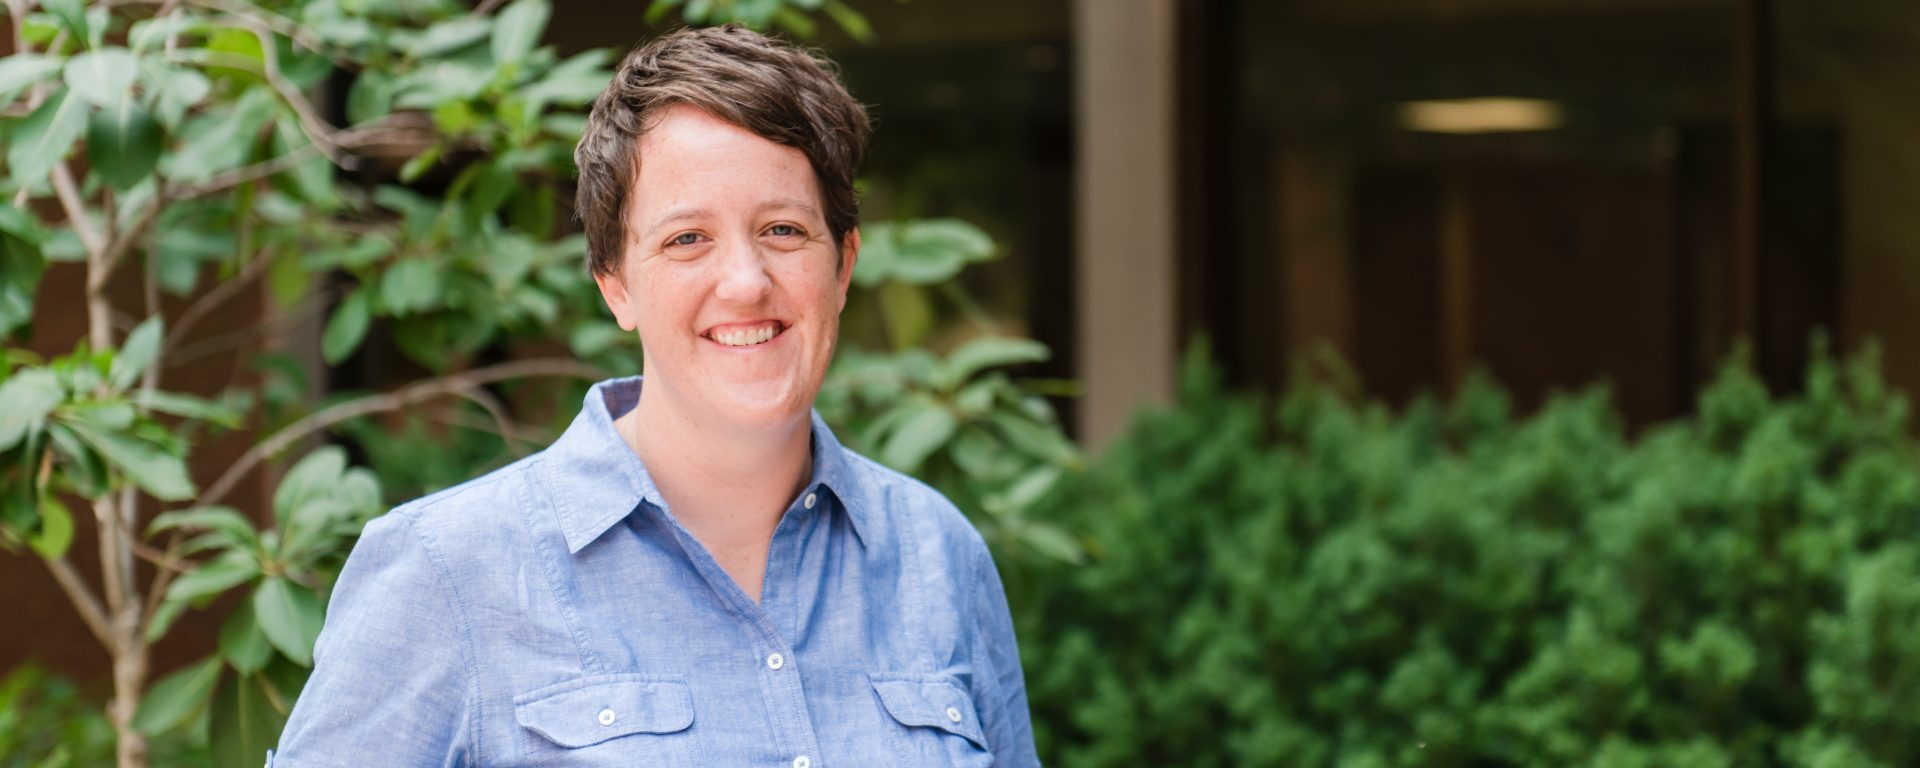 UMBC's Erin Green receives nearly $1 million NIH grant for cutting-edge epigenetics research